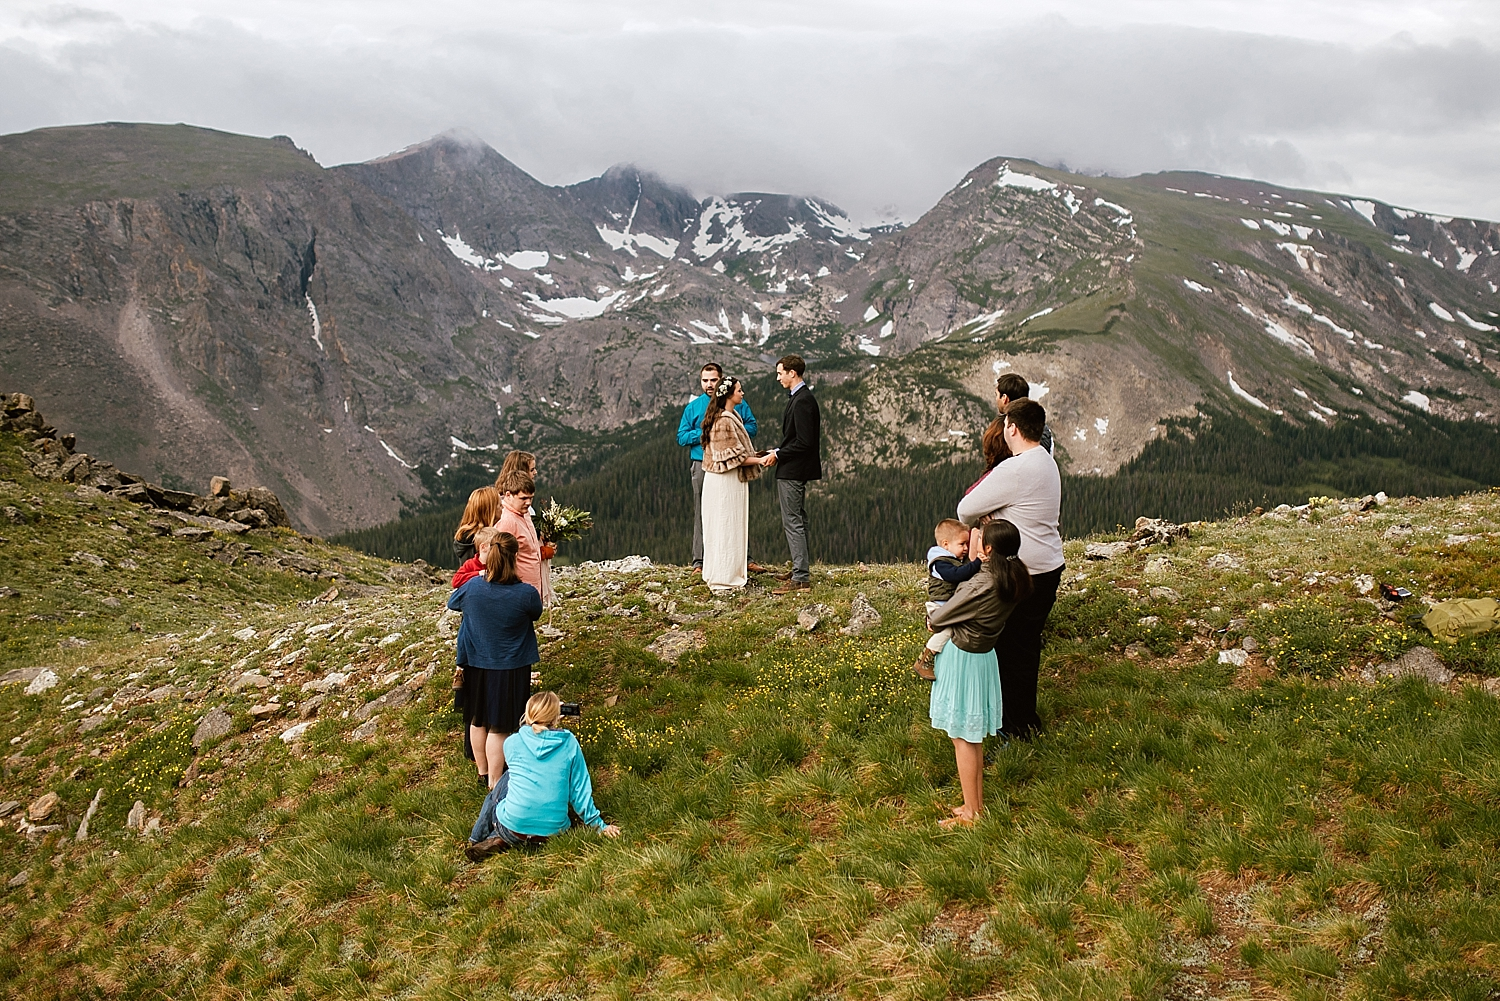 I can't even believe my eyes when I look at the pictures from Jessica and Edward's Estes Park elopement just off Trail Ridge Road! Such a gorgeous and intimate wedding! | Rocky mountain National Park elopement photos by Estes Park Colorado wedding photographer, Maddie Mae.